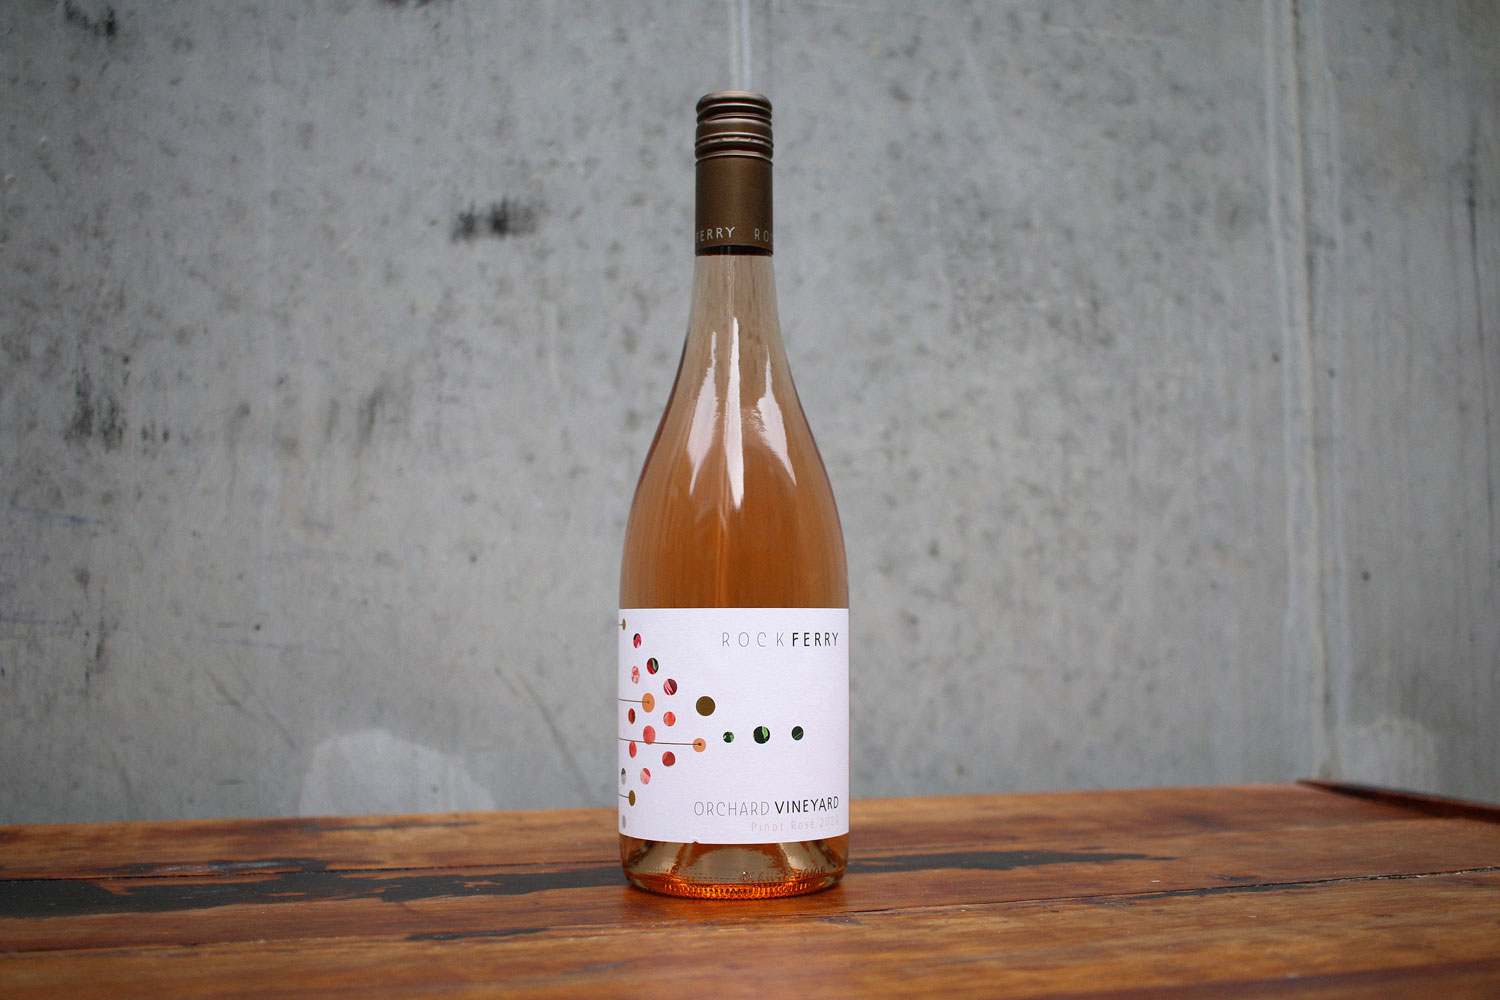 2019 Rockferry 'Orchard' Pinot Noir Rose